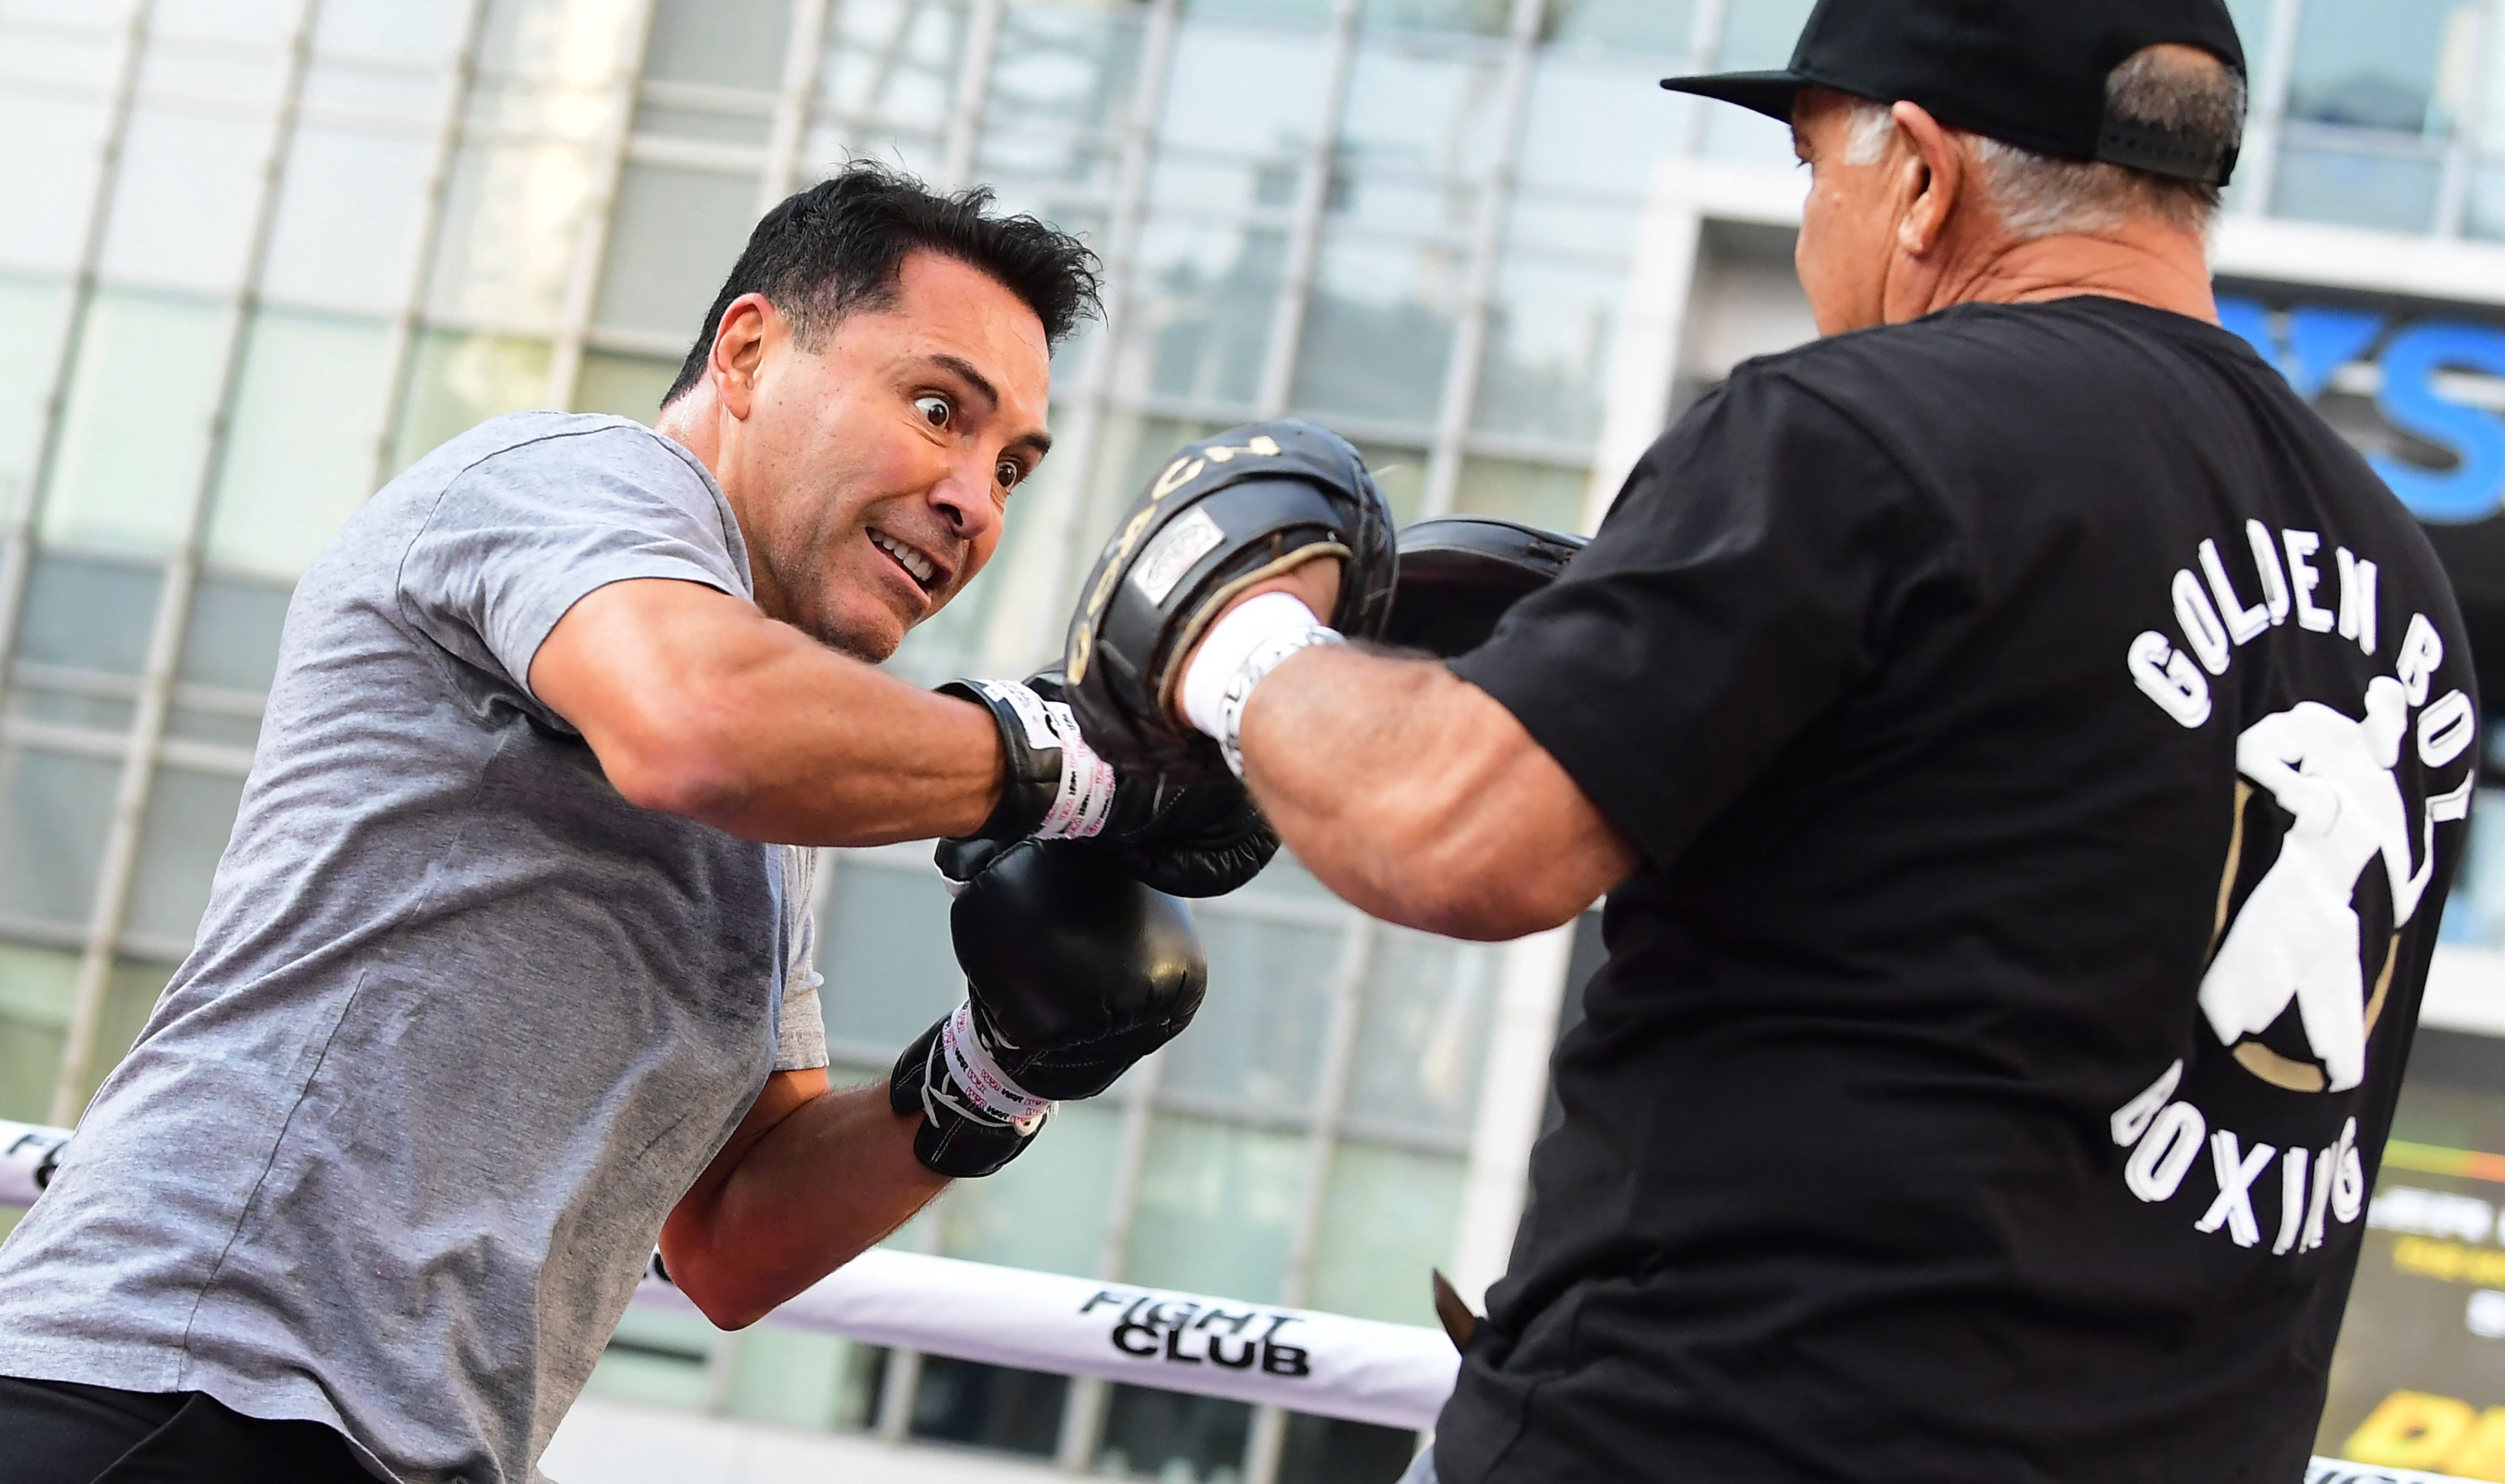 De La Hoya hitting mits ahead of his cancelled PPV bout against Vitor Belfort.